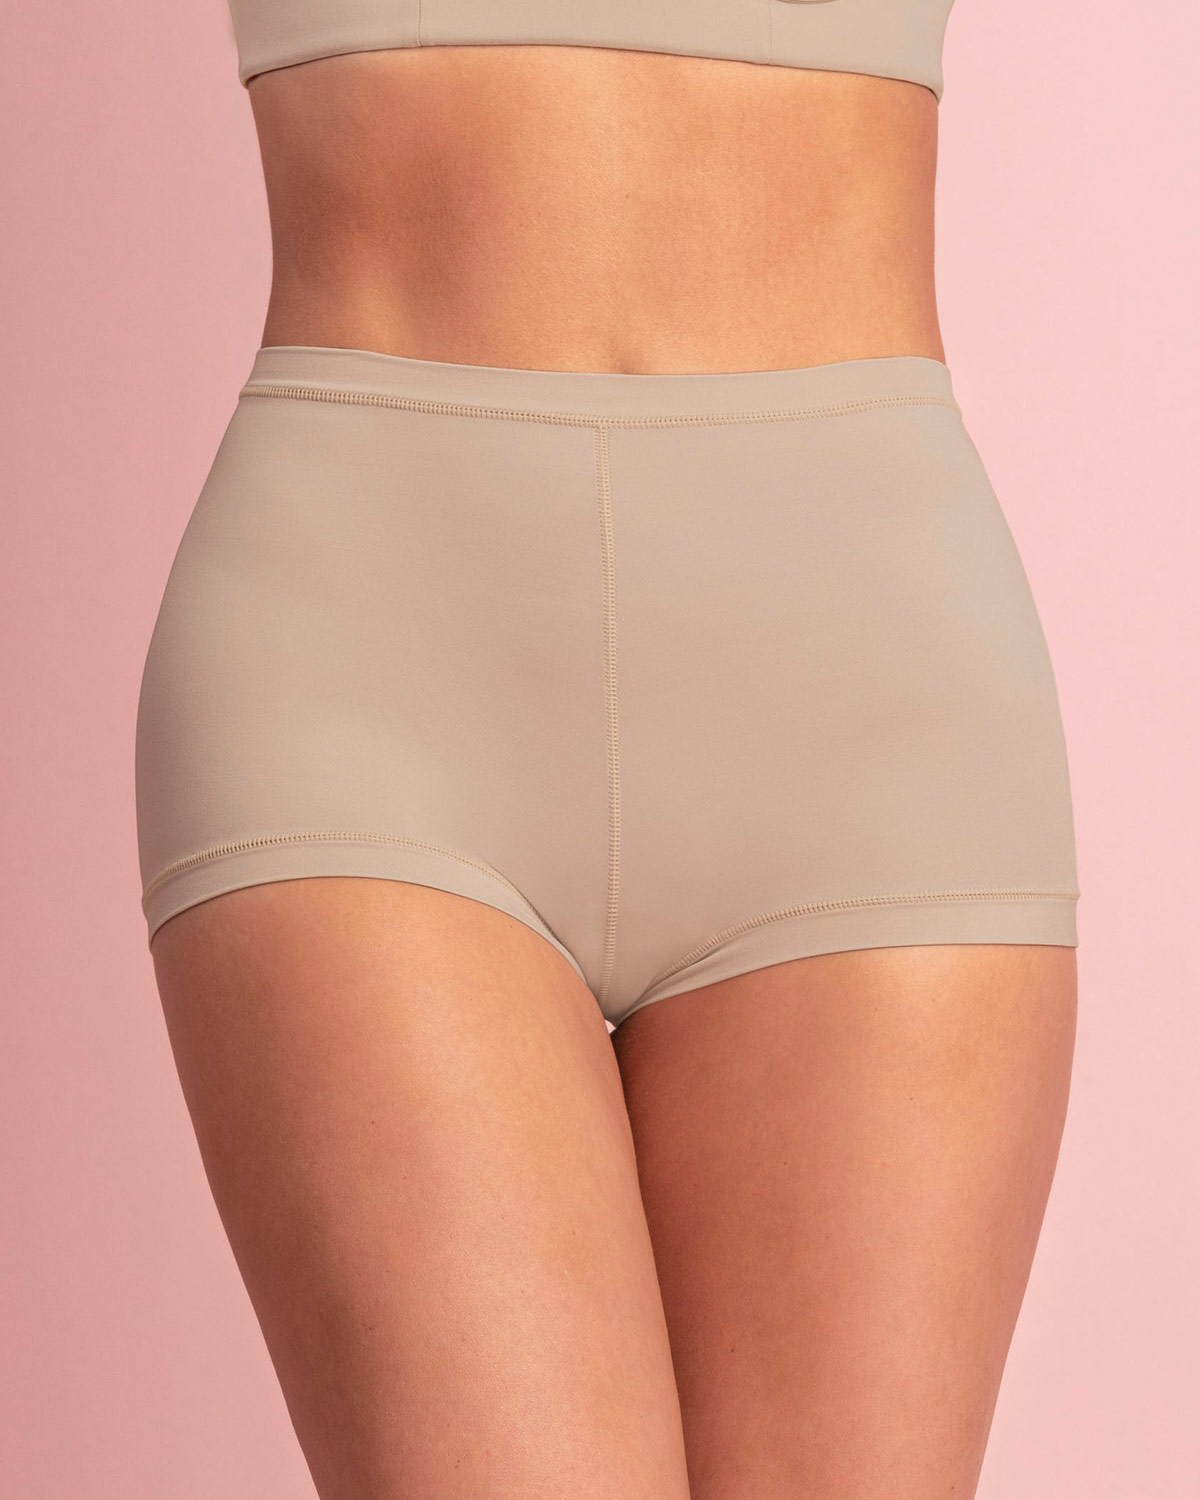 perfect fit boyshort style panty | leonisa